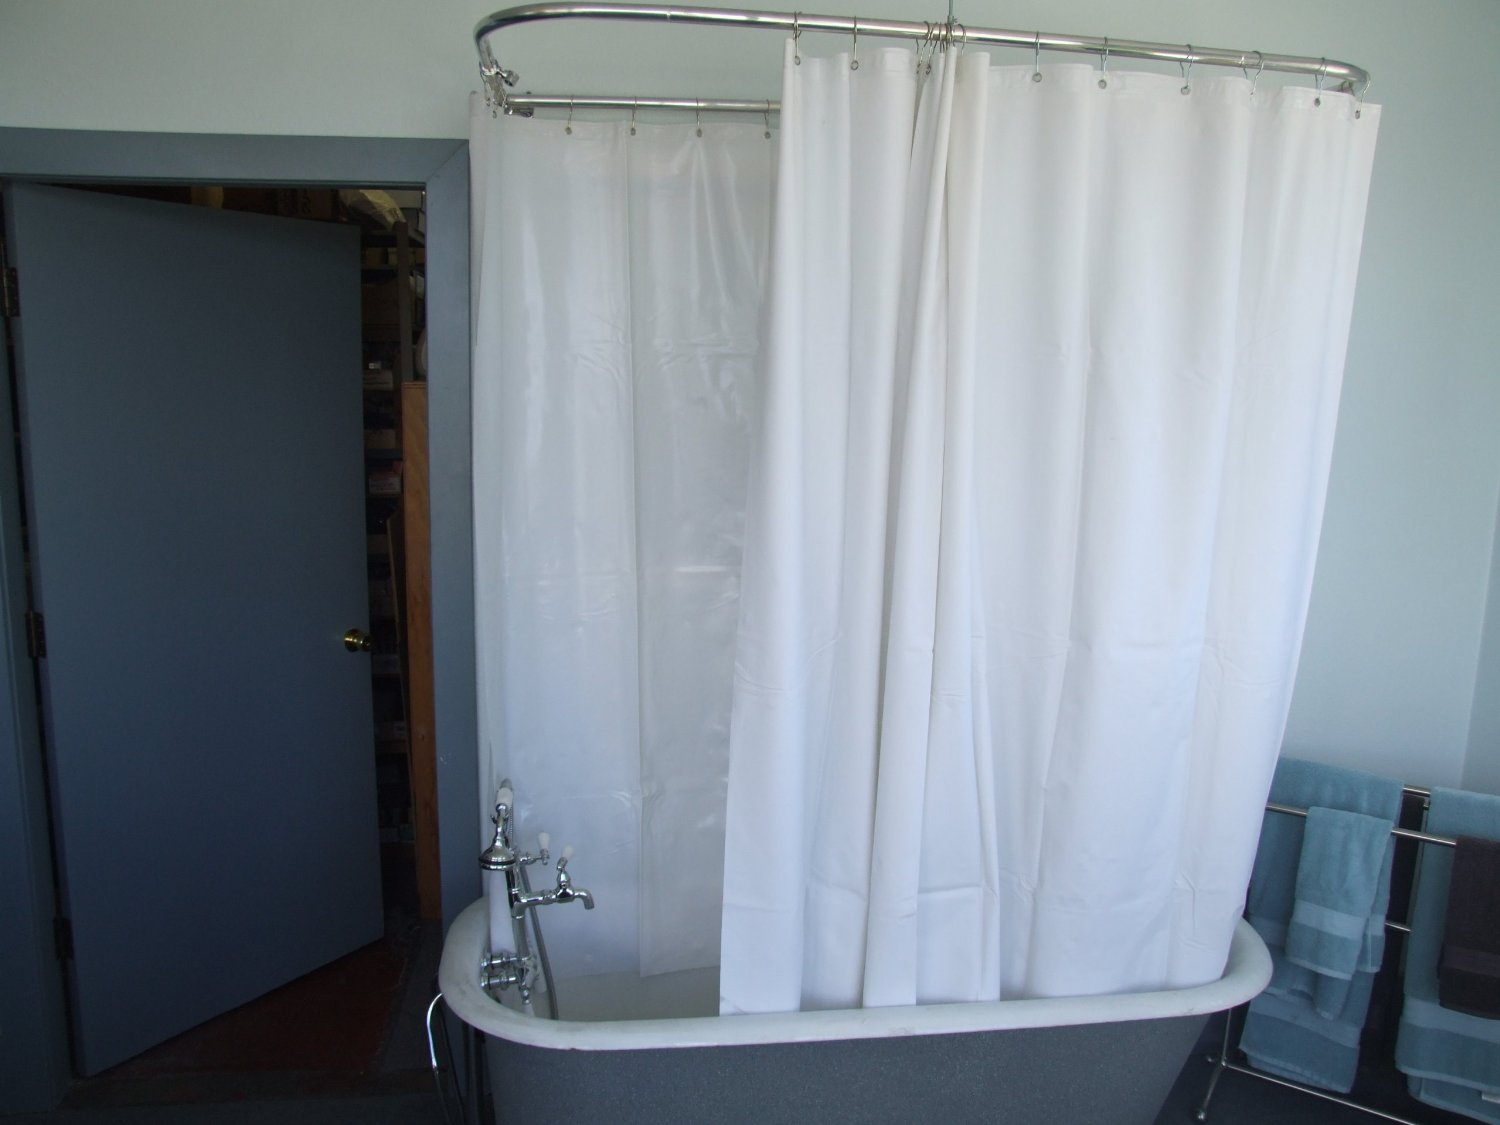 Cheap Extra Wide Shower Find Extra Wide Shower Deals On